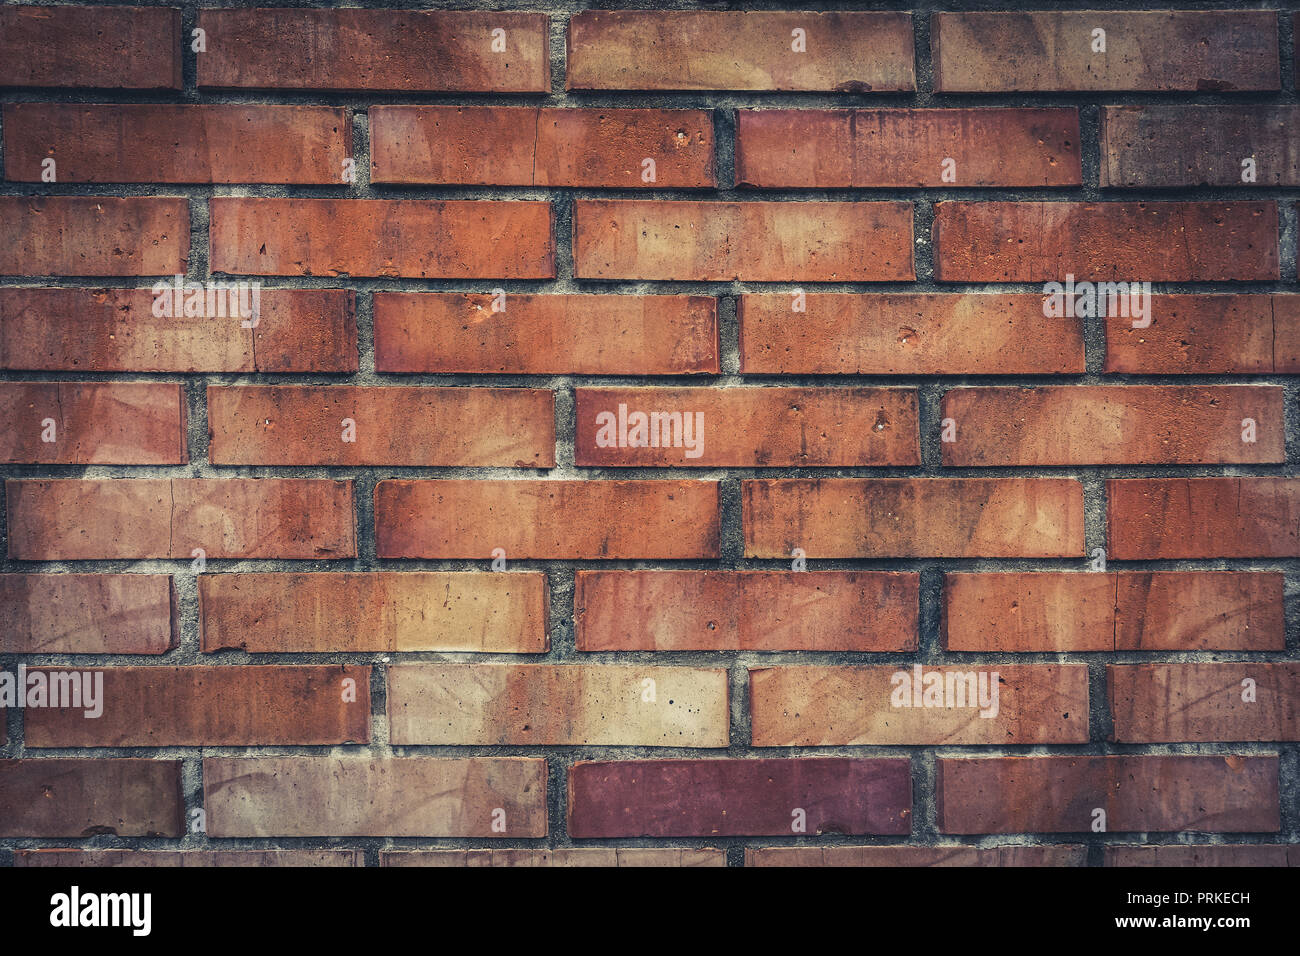 old red brick wall textures and backgrounds stock photo 221089921